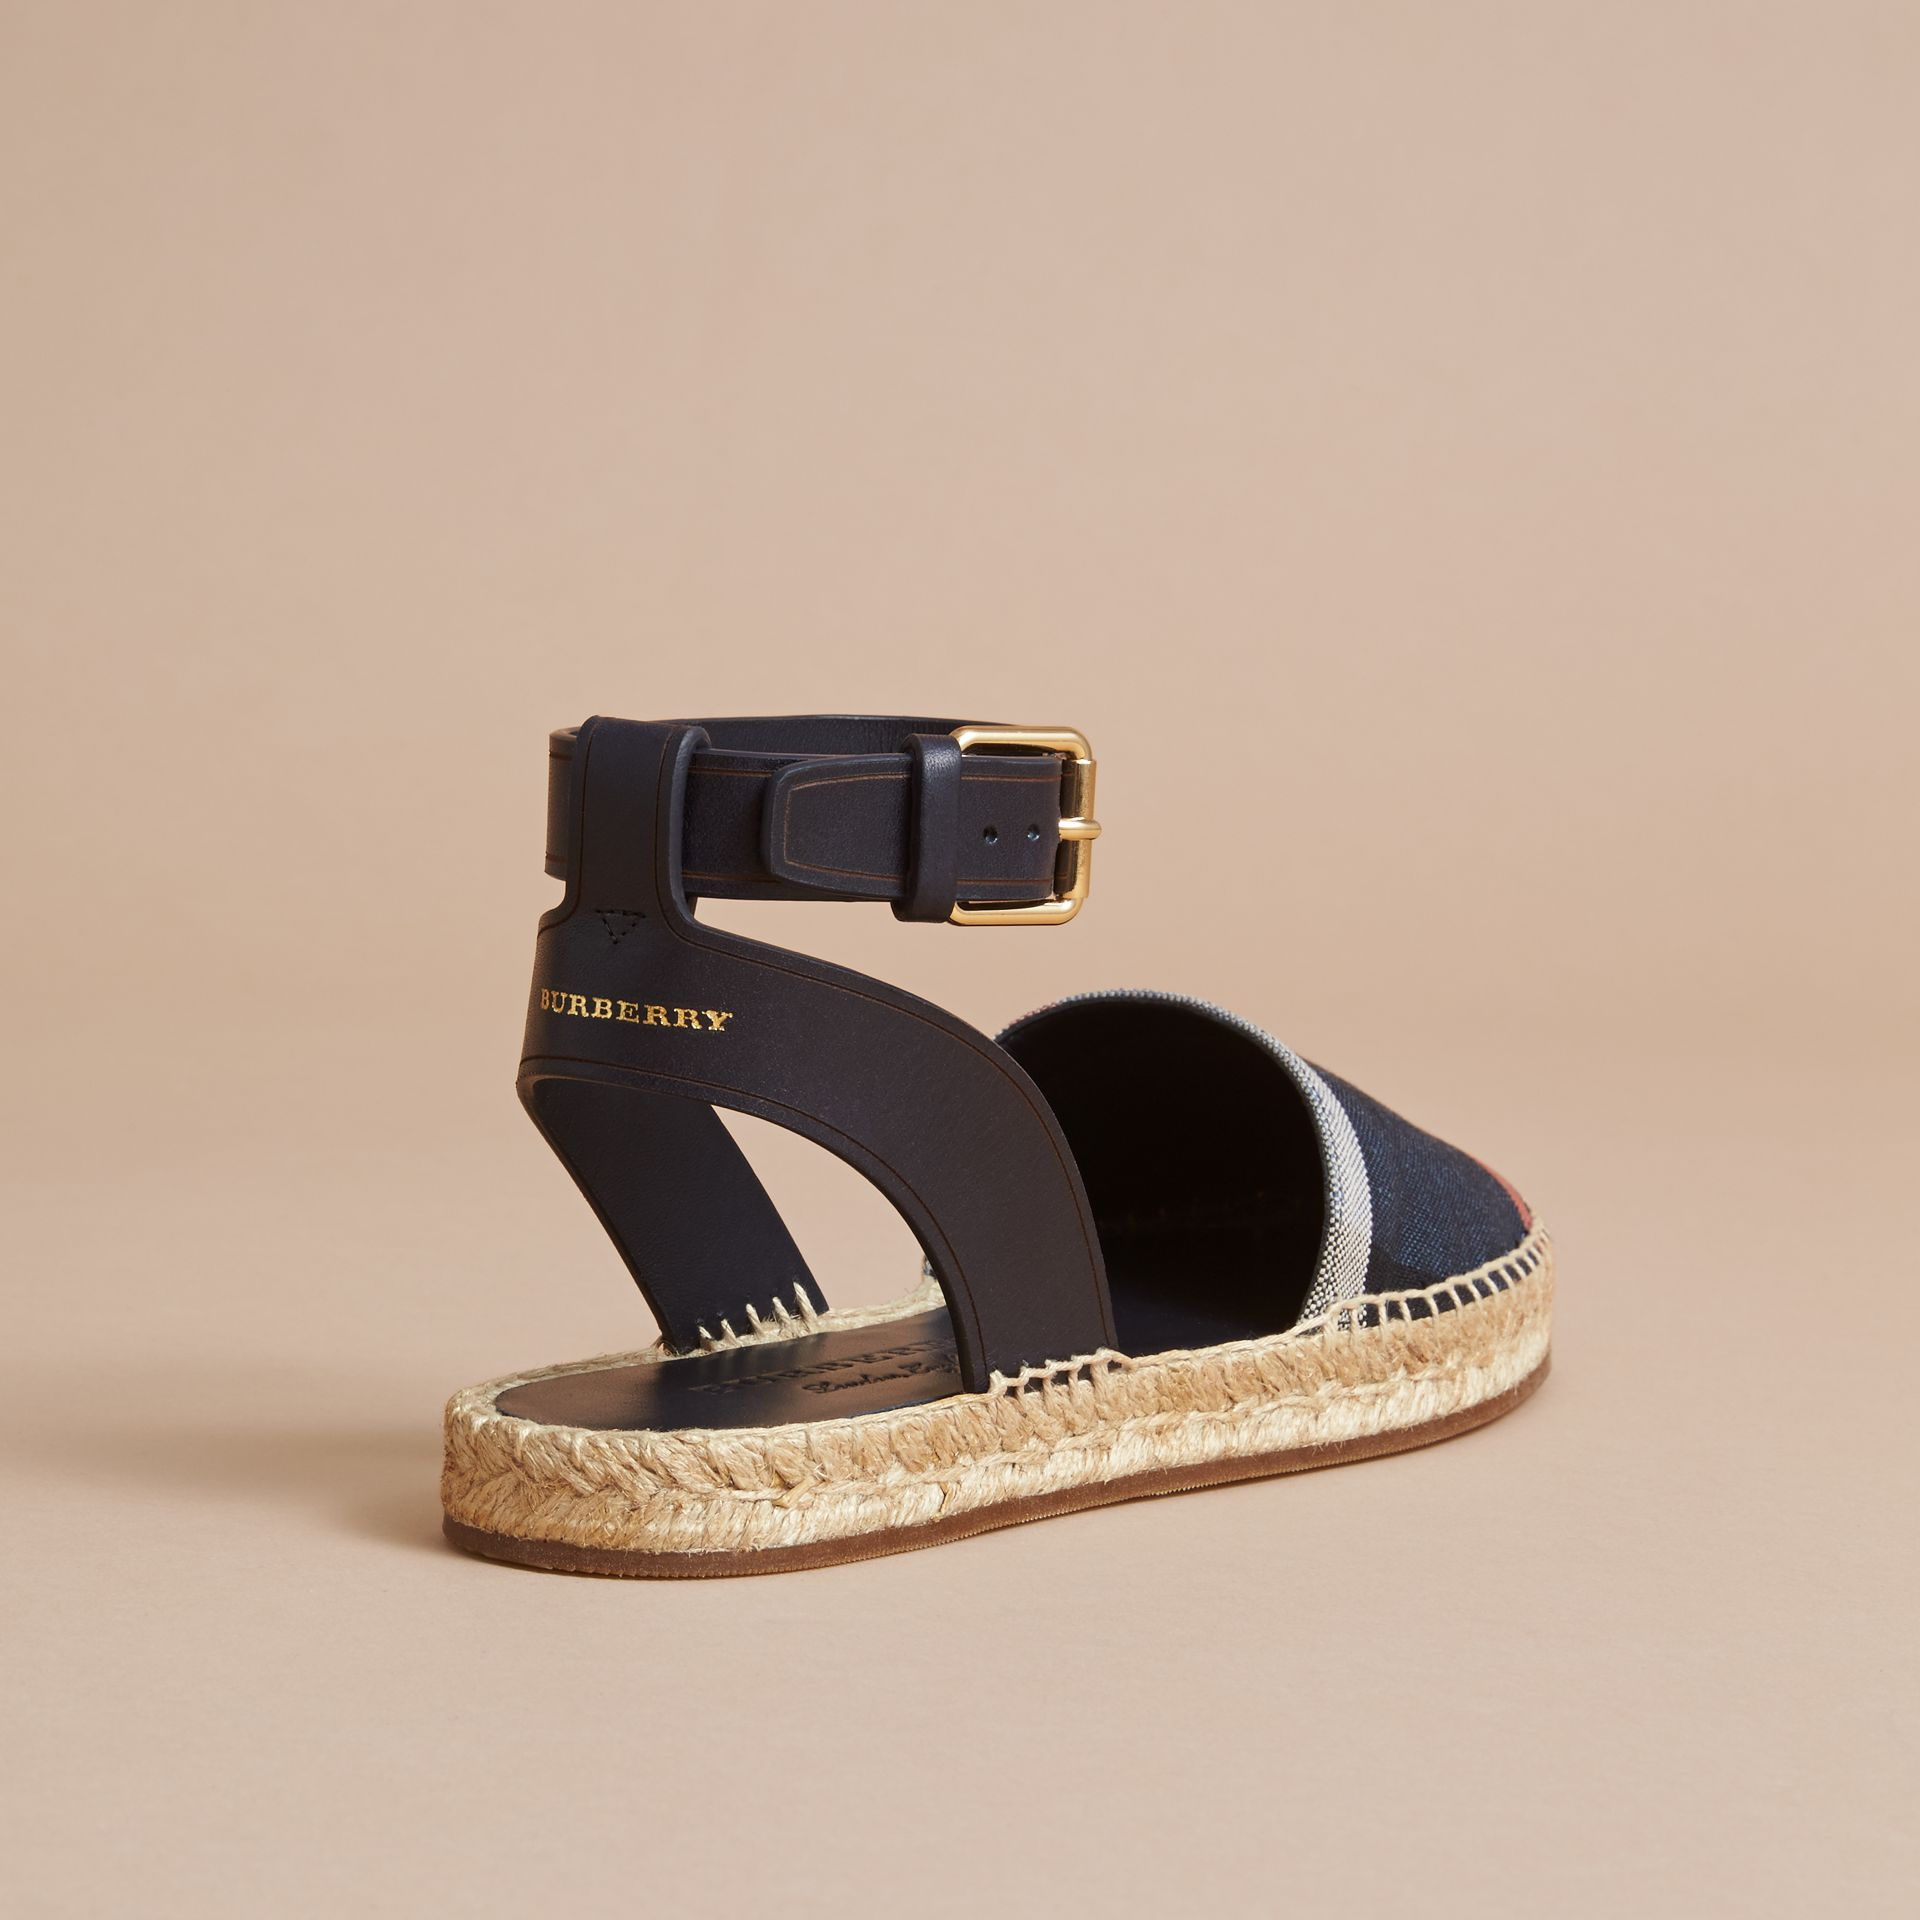 Leather and Check Linen Cotton Espadrille Sandals in Navy - Women | Burberry - gallery image 4